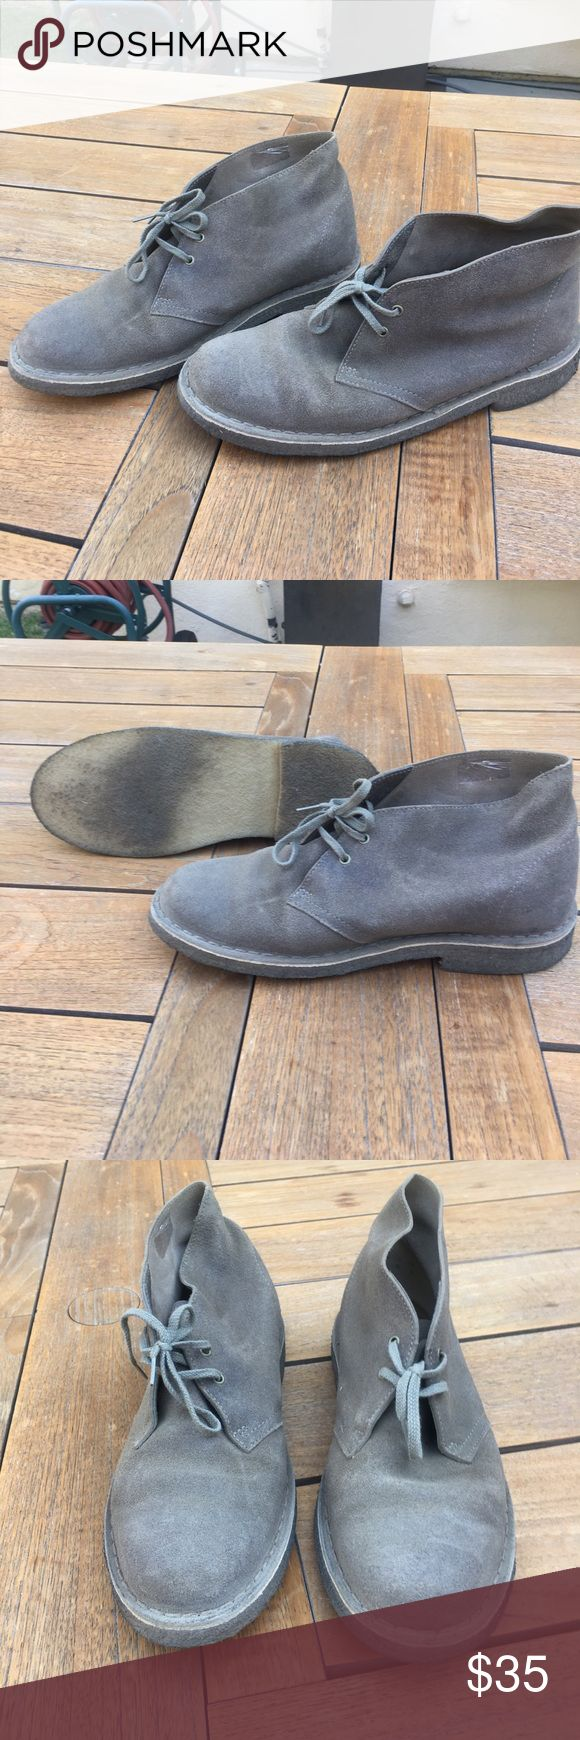 Original clarks desert boot, size 10 Original clarks desert boot, women's size 10 taupe. Worn once, comes in original box. Clarks Shoes Ankle Boots & Booties